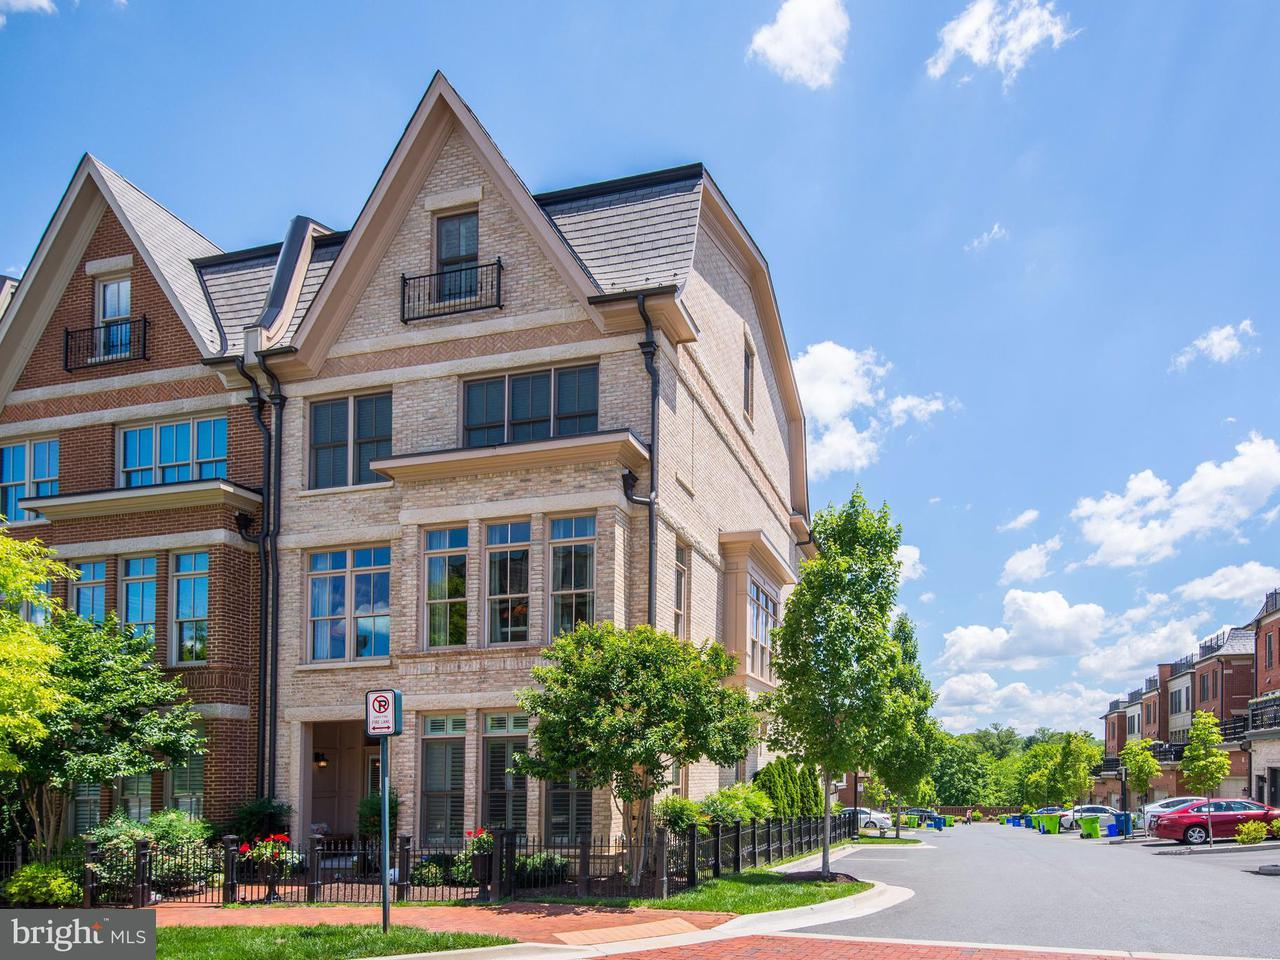 Townhouse for Sale at 10887 SYMPHONY PARK Drive 10887 SYMPHONY PARK Drive North Bethesda, Maryland 20852 United States